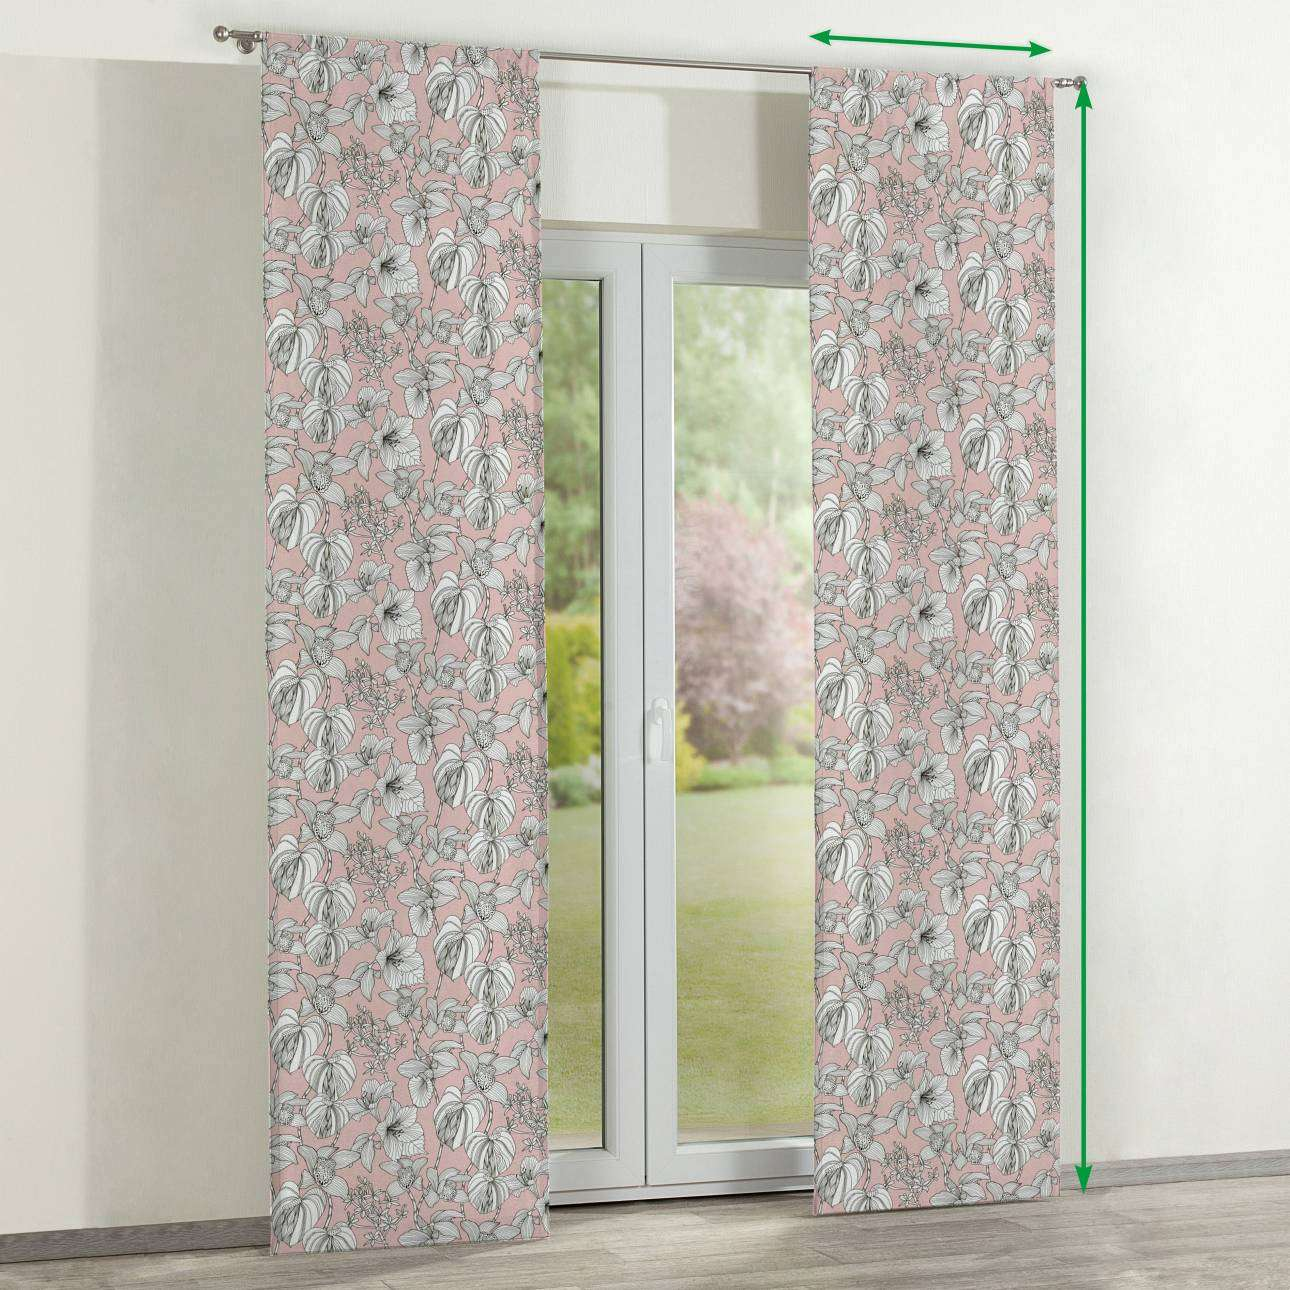 Slot panel curtains – Set of 2 in collection Brooklyn, fabric: 137-74